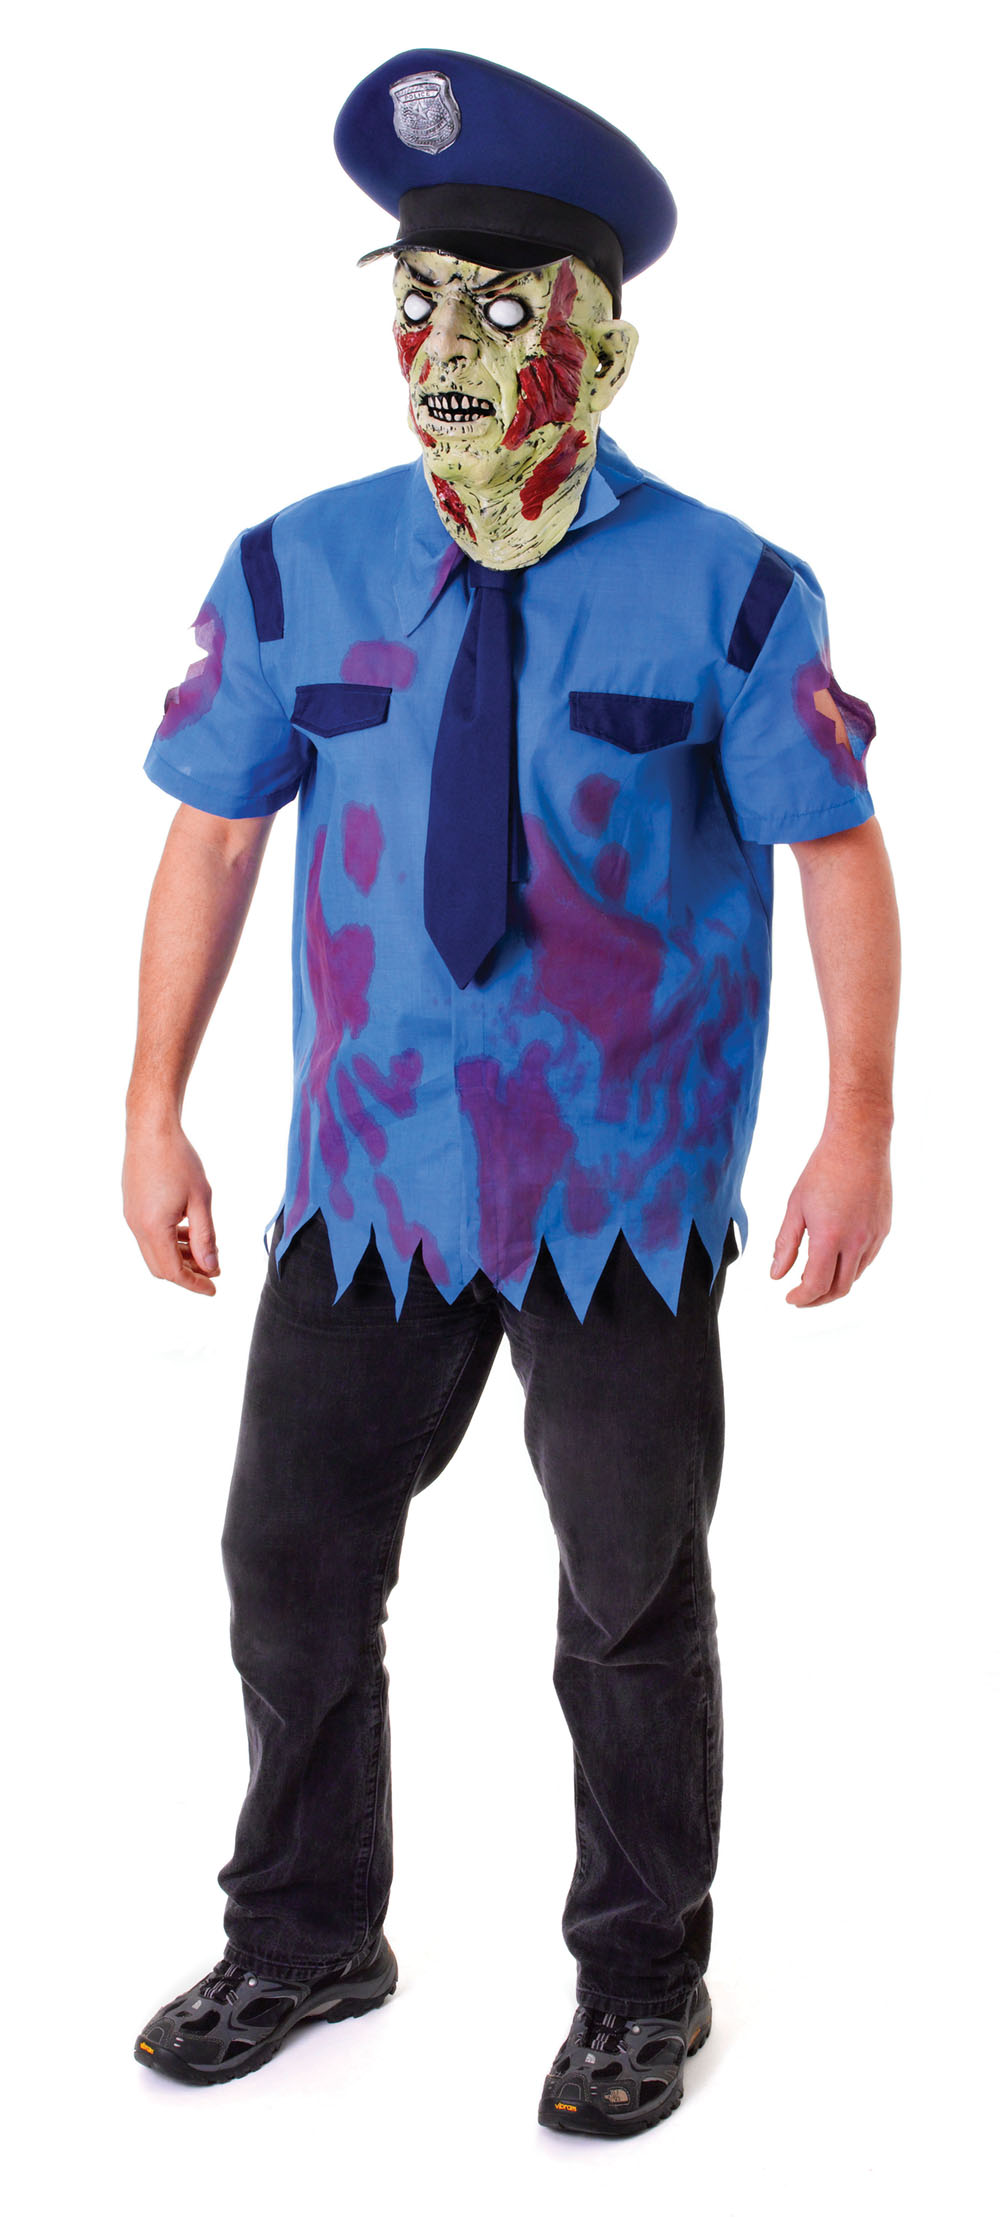 Zombie Cop Fancy Dress Costume Policeman Monster Halloween Horror Outfit Party